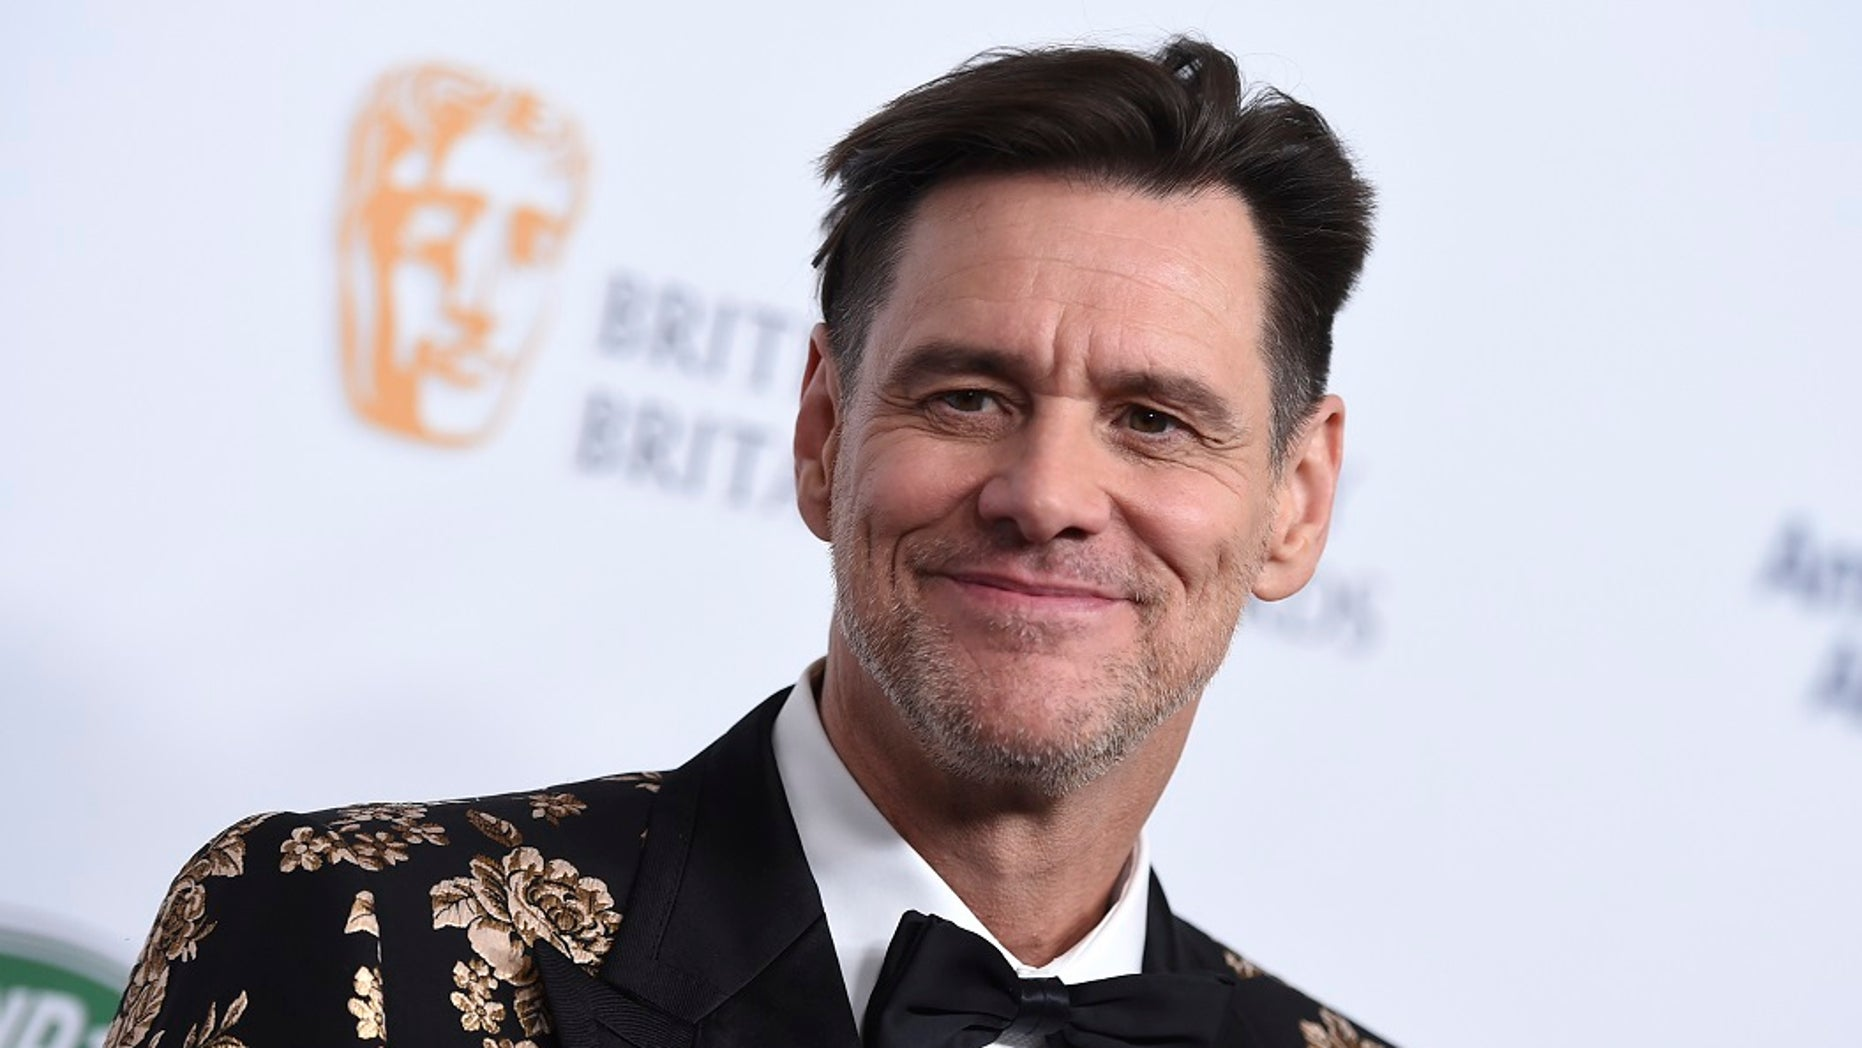 Jim Carrey arrives at the 2018 BAFTA Los Angeles Britannia Awards at the Beverly Hilton on Friday.